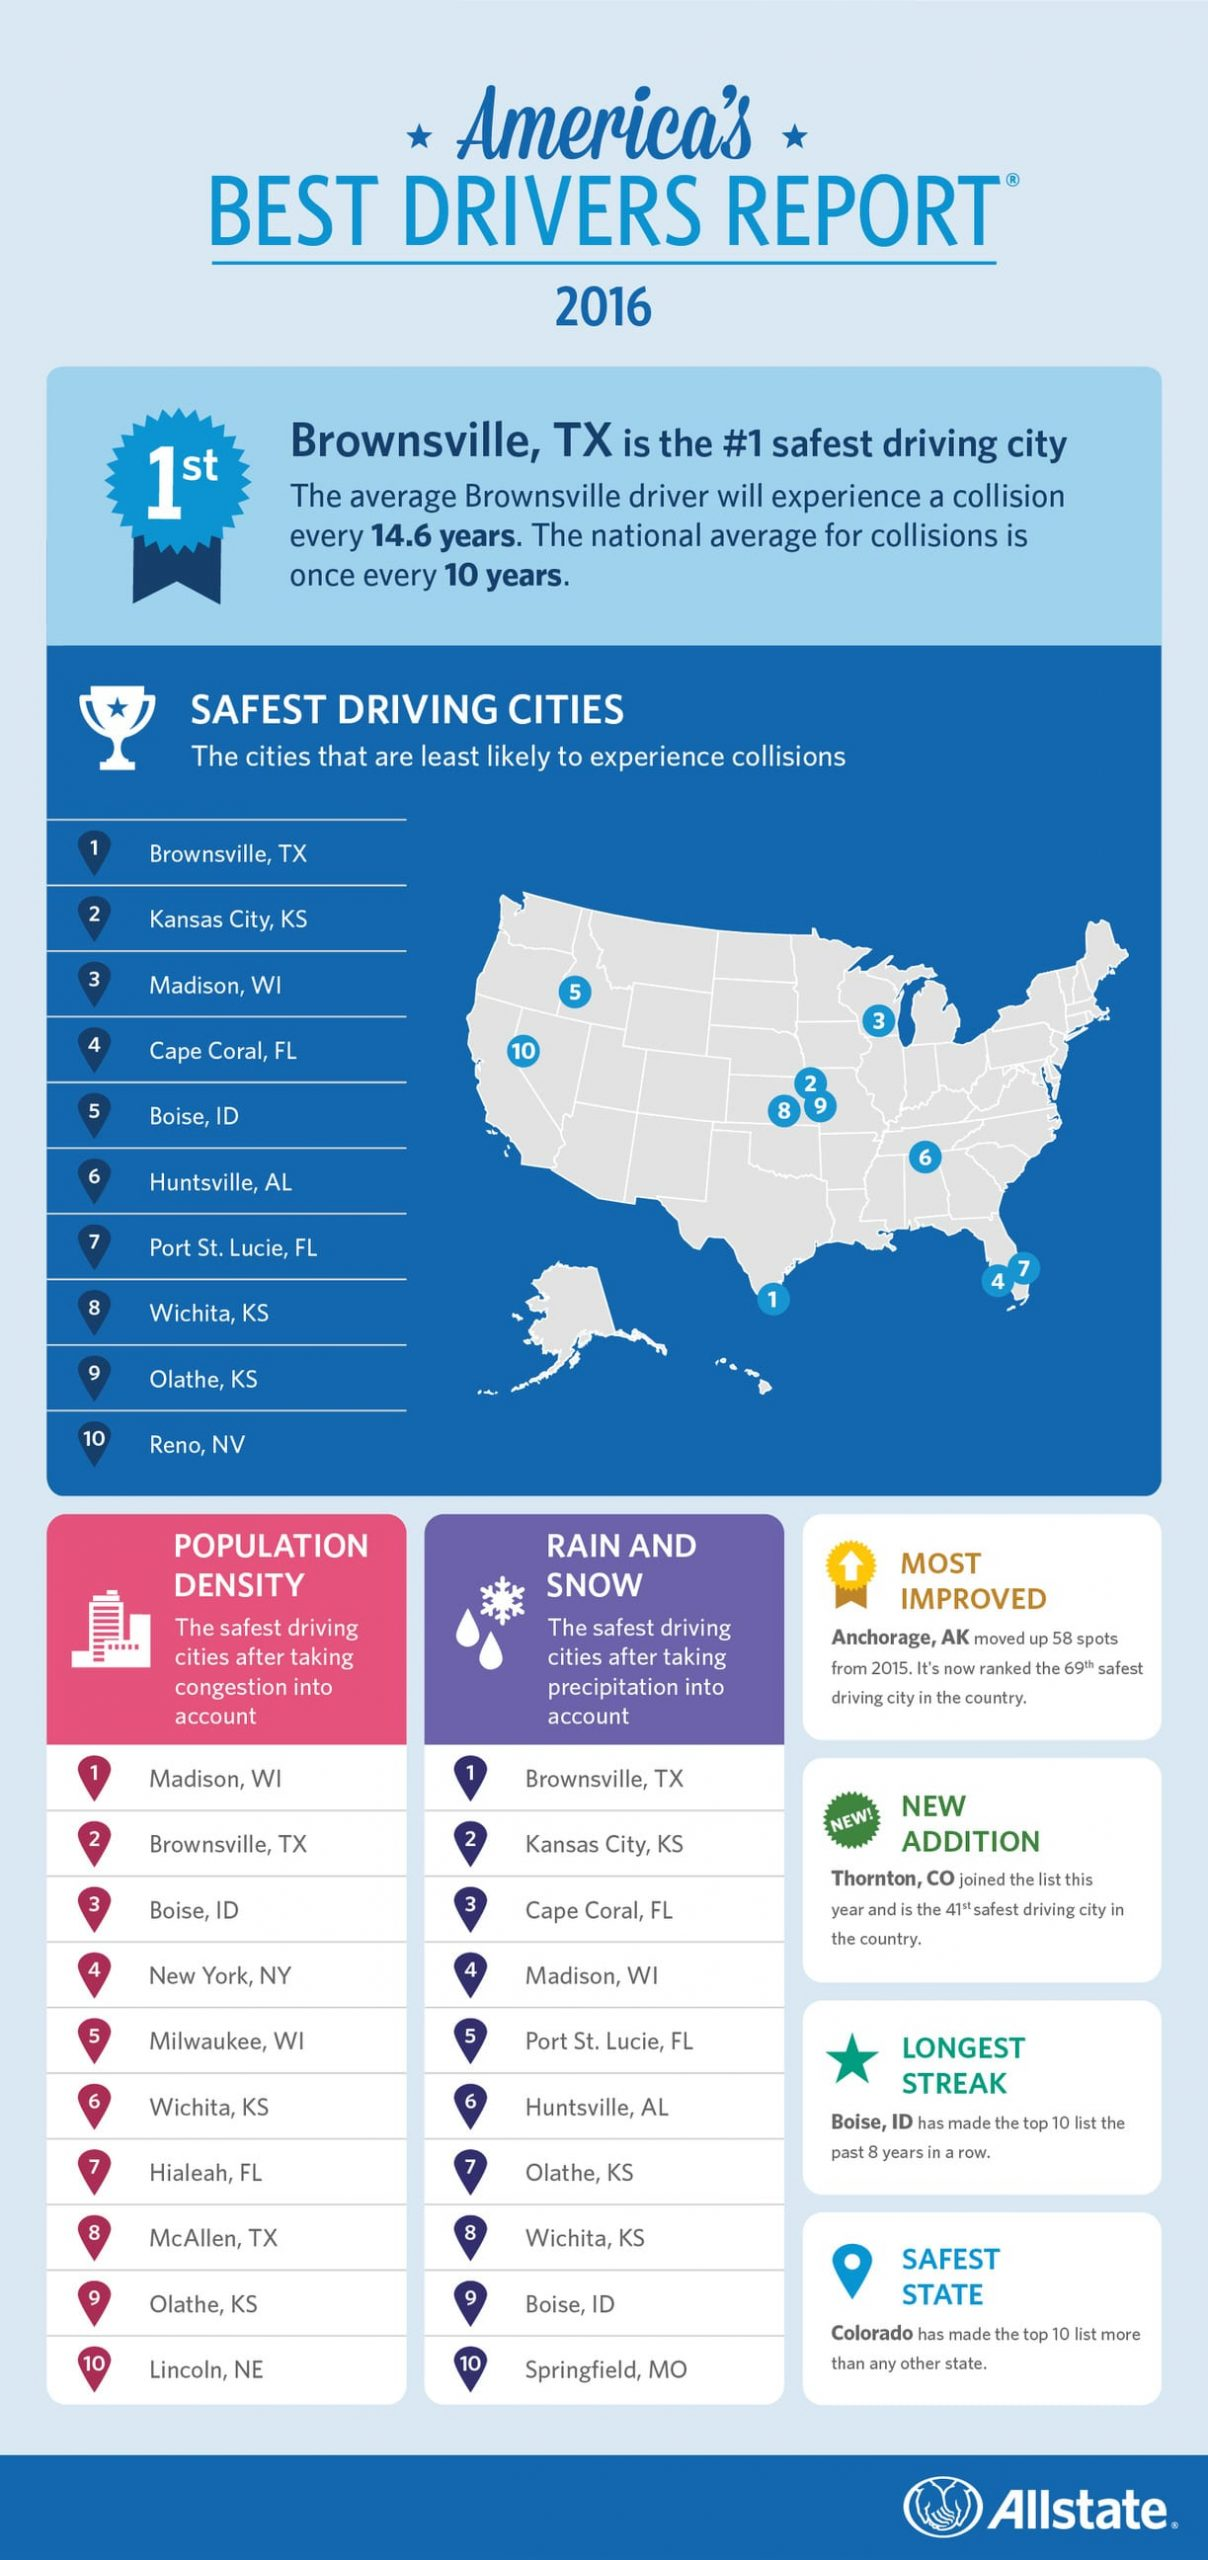 The worst and best drivers in America